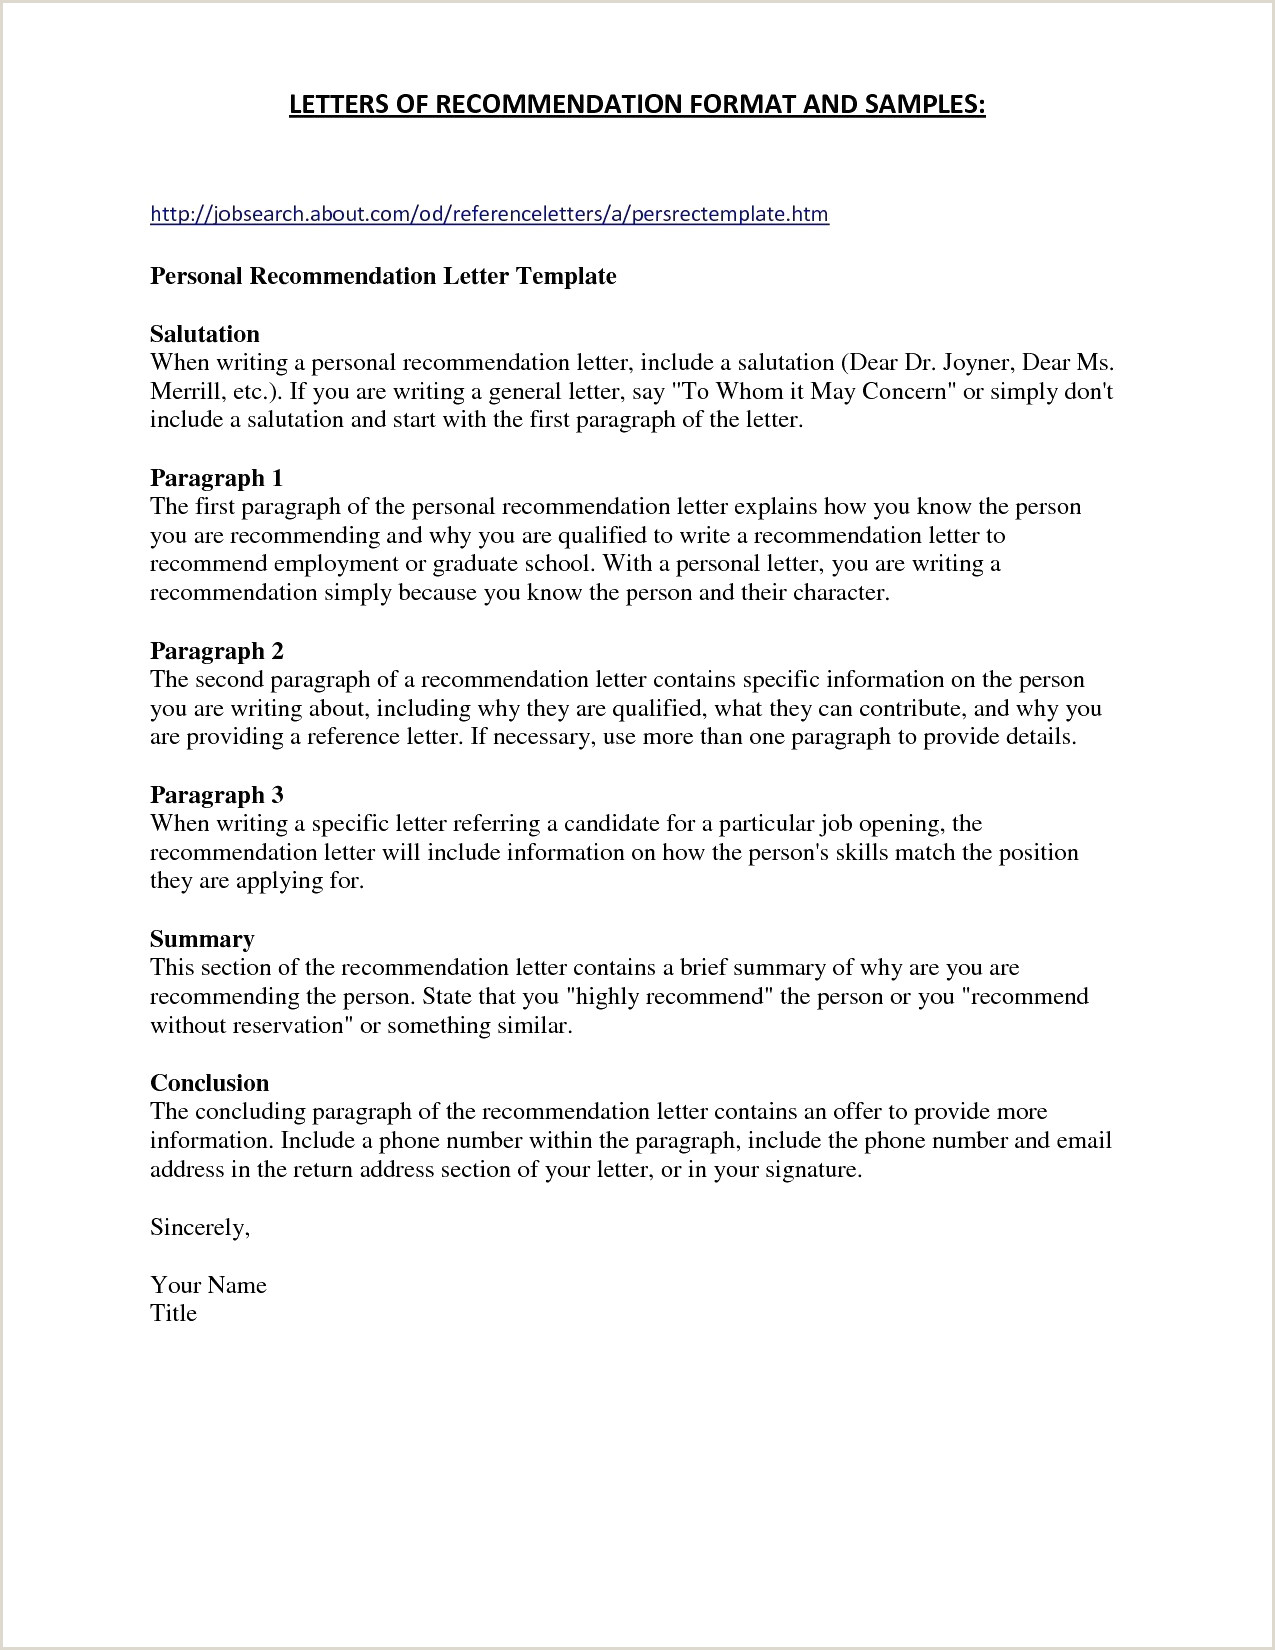 Resume Format For Job Blank 24 Luxe Stock De Resume Template In Word